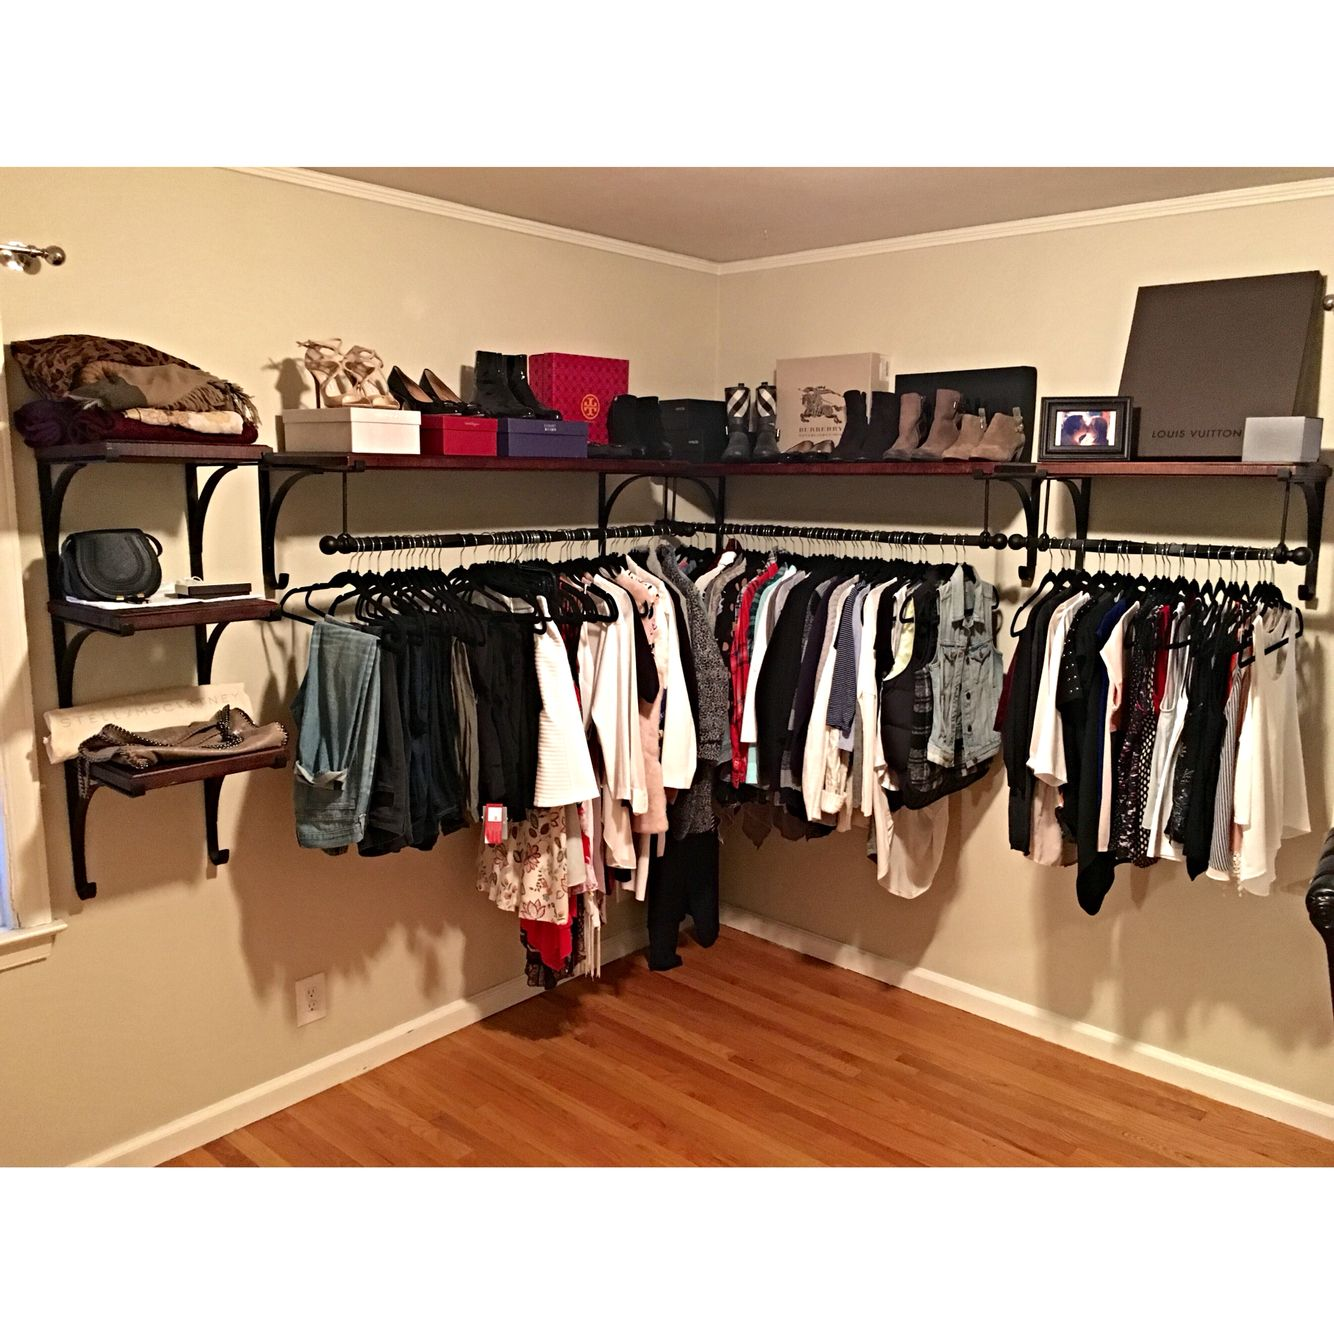 Pleasing Pottery Barn New York Closet Shelves For The Home In Home Interior And Landscaping Ologienasavecom